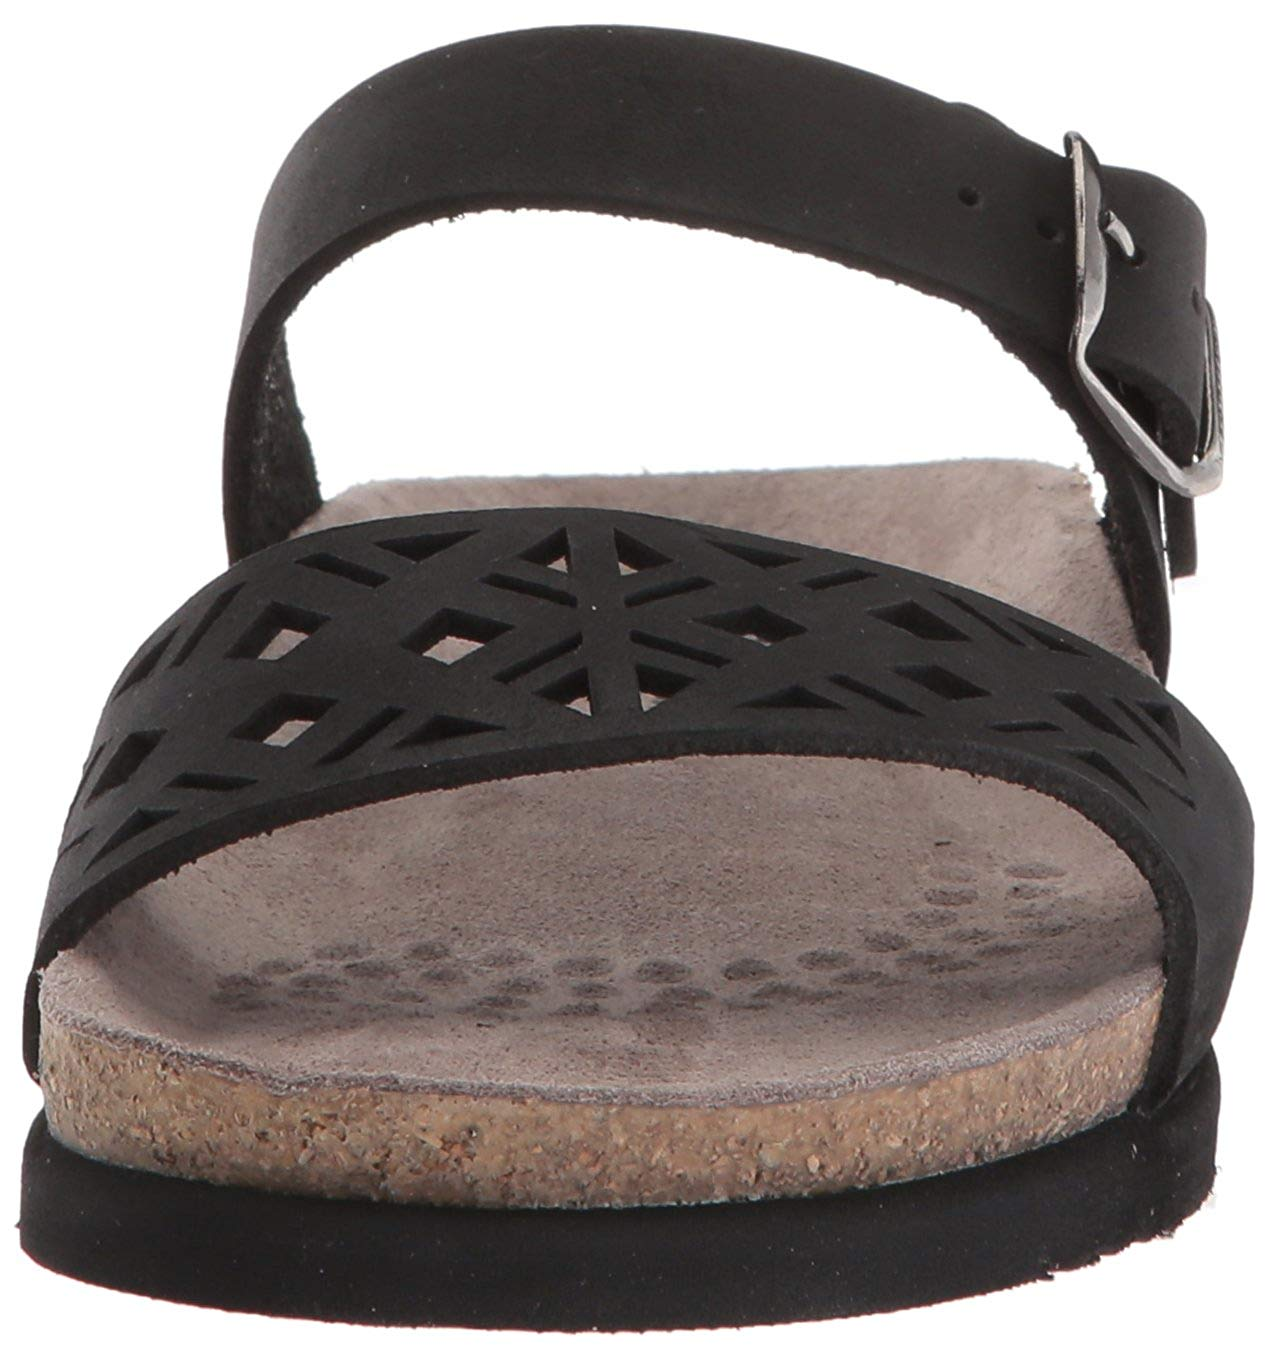 4bcfb070f7 Mephisto Womens Hirena Leather Open Toe Casual Slide Sandals | eBay